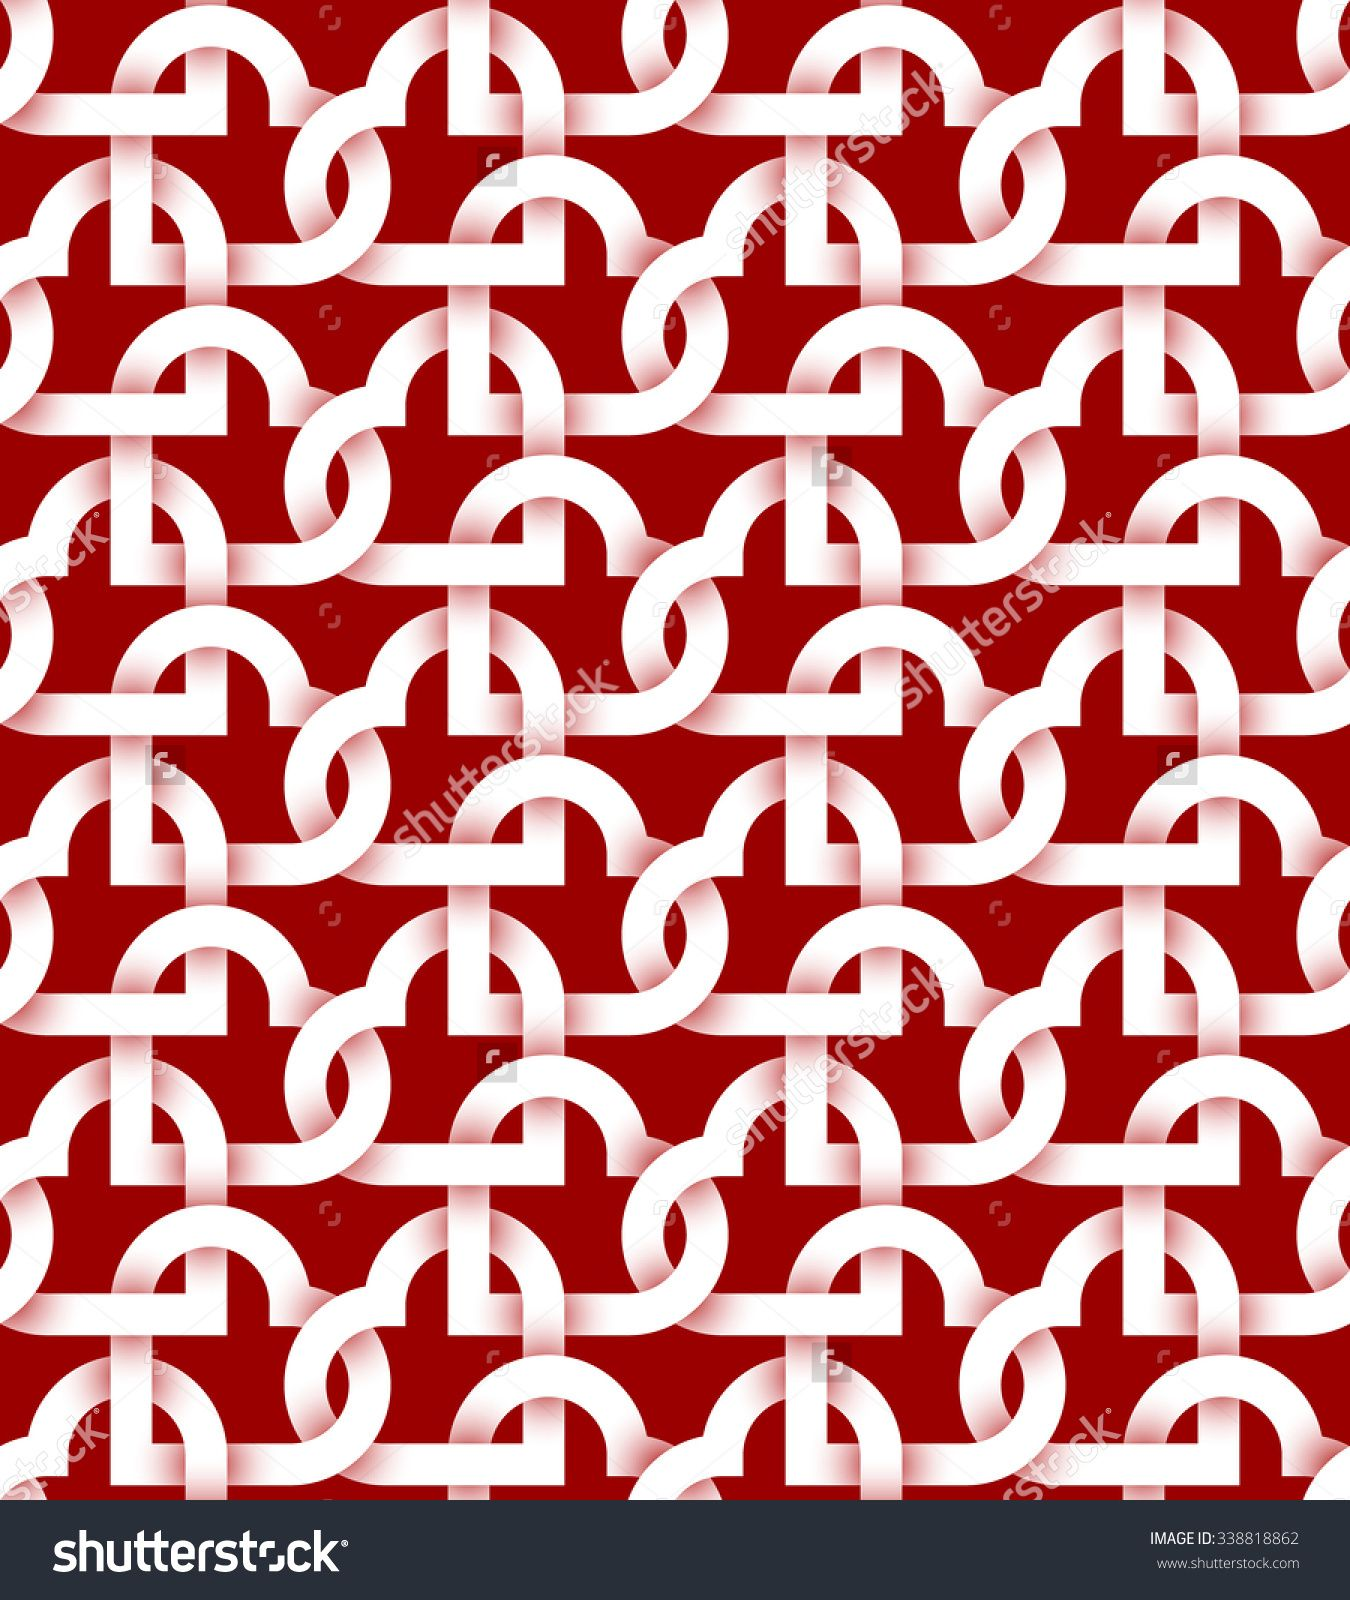 Abstract repeatable #pattern #background of white twisted strips on red. Swatch of intertwined #hearts.